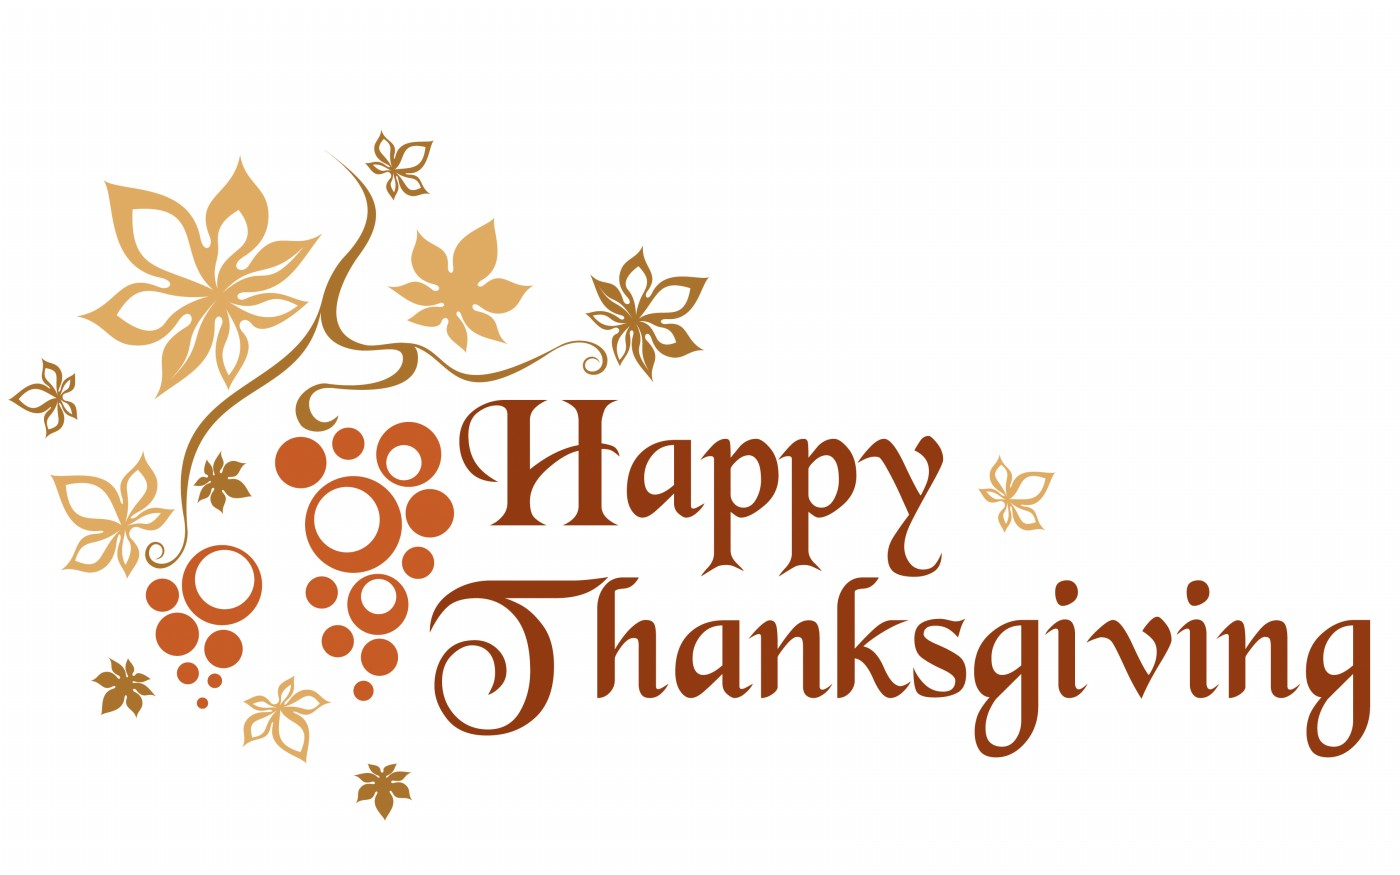 Sophisticated Messages Thanksgiving 2017 Hd Quotes Quotes About Thanksgiving Day Family Quotes About Thanksgiving Blessings Thanksgiving 2017 Hd Greetings inspiration Quotes About Thanksgiving